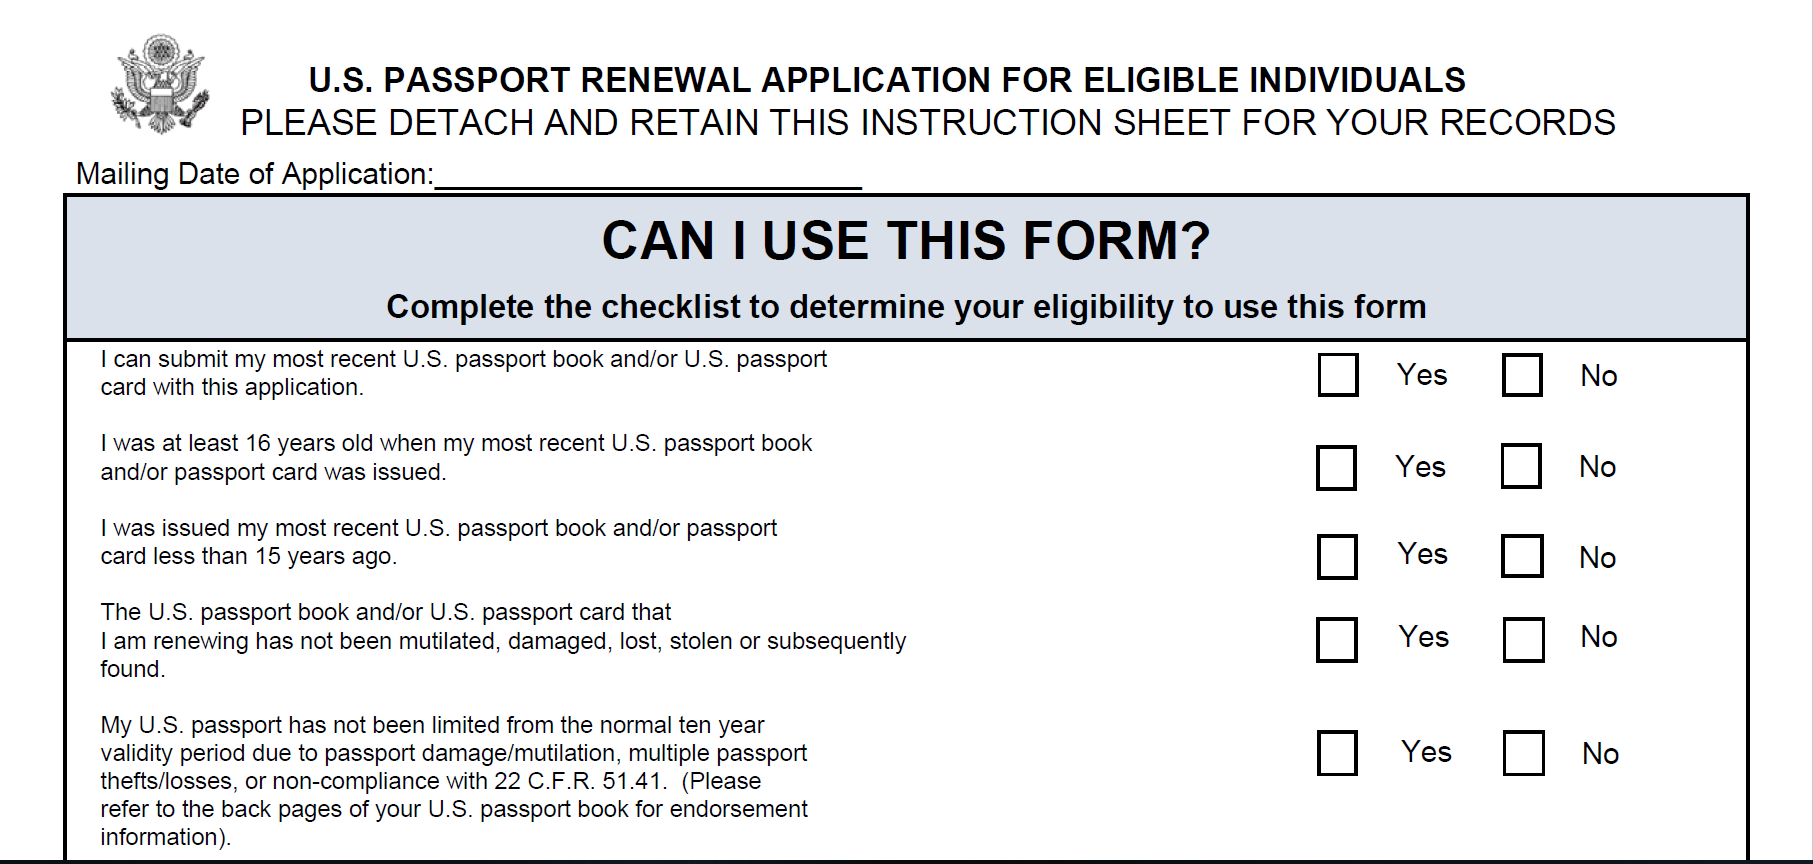 Form DS-82: U.S. Passport Renewal Application for Eligible Individuals